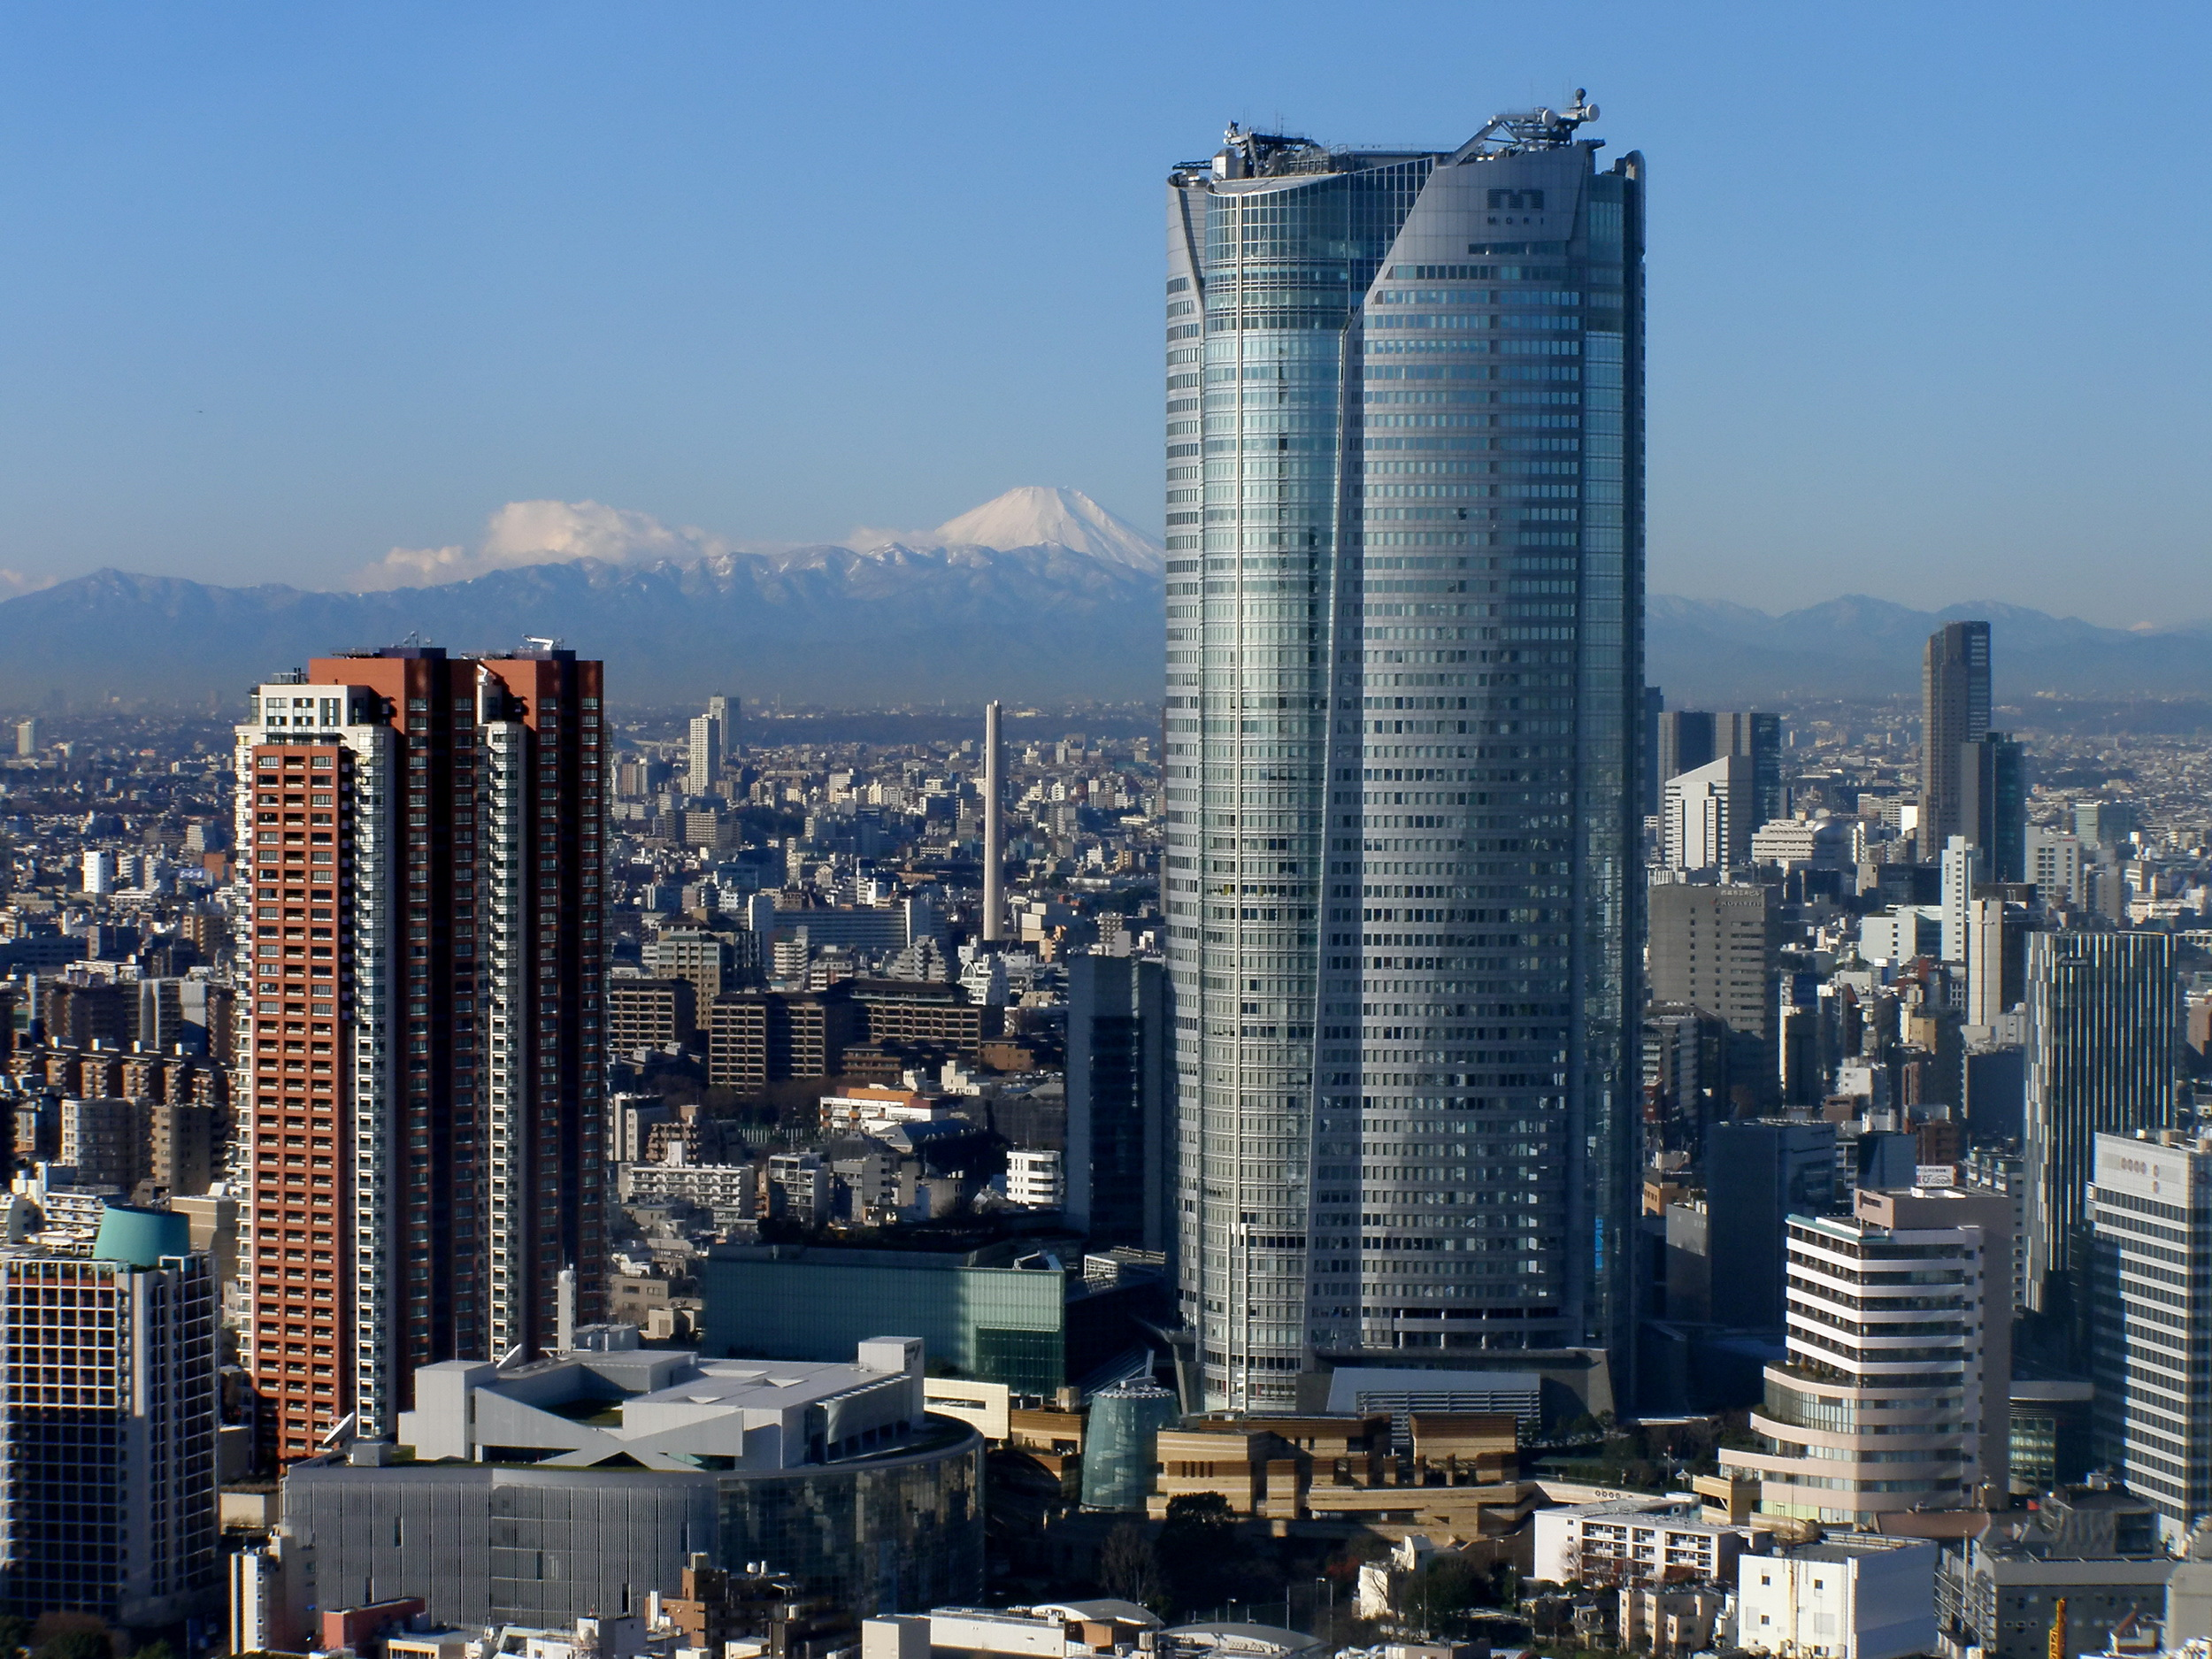 roppongi hills Compare 203 hotels near roppongi hills in minato using 50079 real guest reviews earn free nights, get our price guarantee & make booking easier with hotelscom.